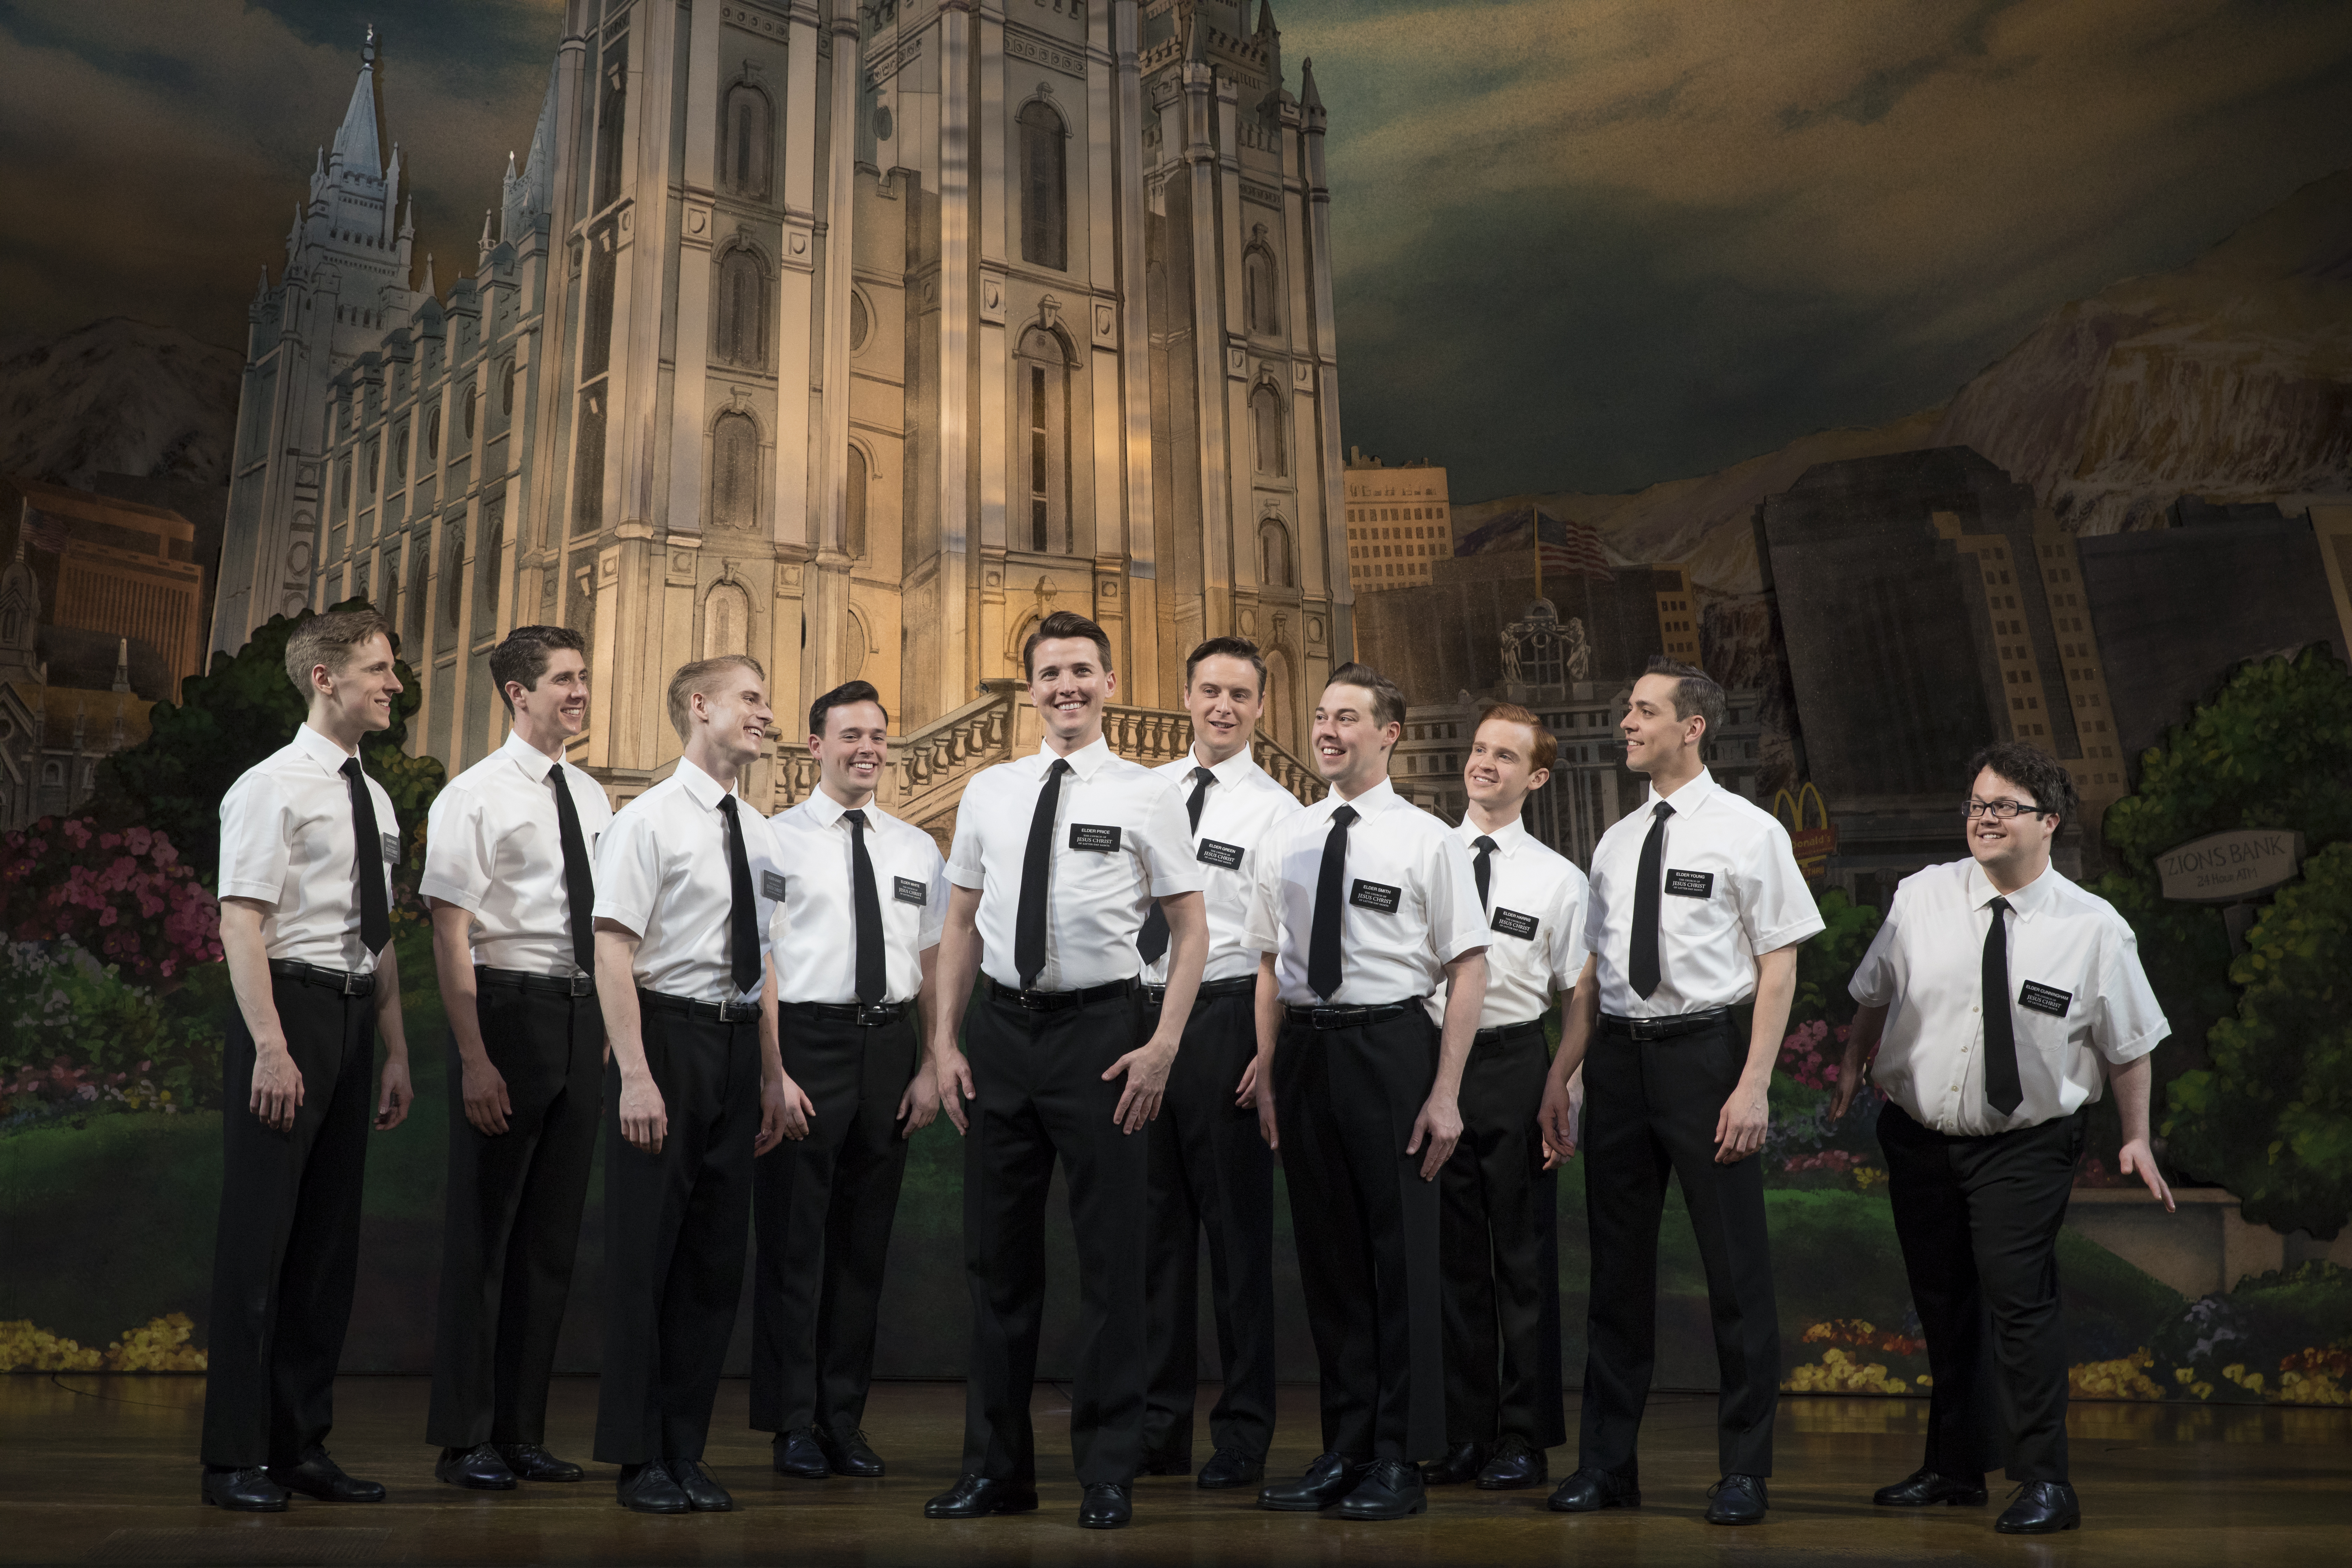 NEW-Dave-Thomas-Brown-as-Elder-Price-center-Cody-Jamison-Strand-as-Elder-Cunningham-far-right-and-company-in-The-Book-of-Mormon-452.jpg